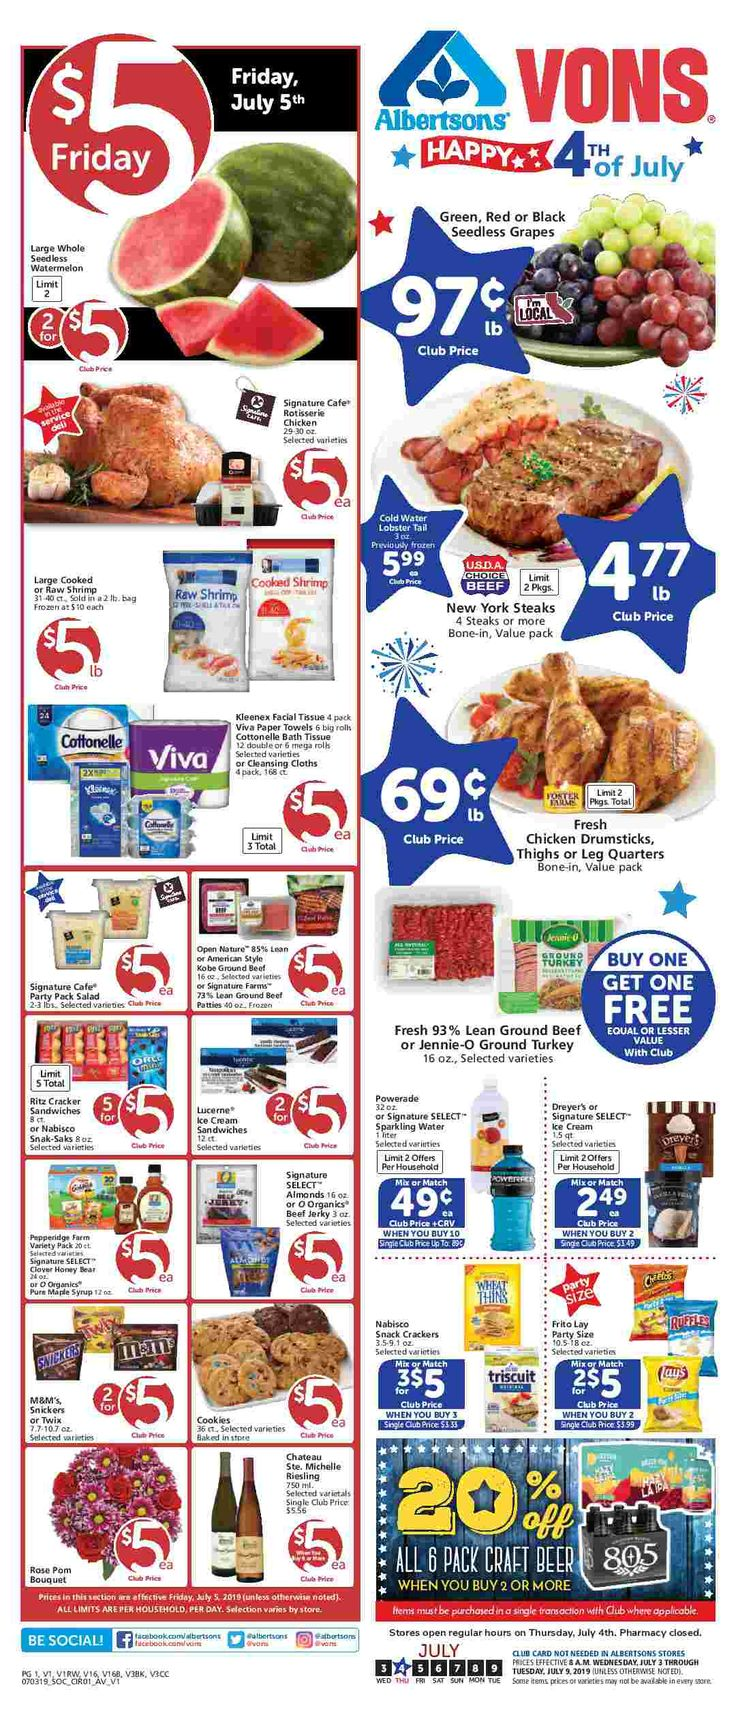 Vons Weekly Ad Flyer September 25 October 1, 2019